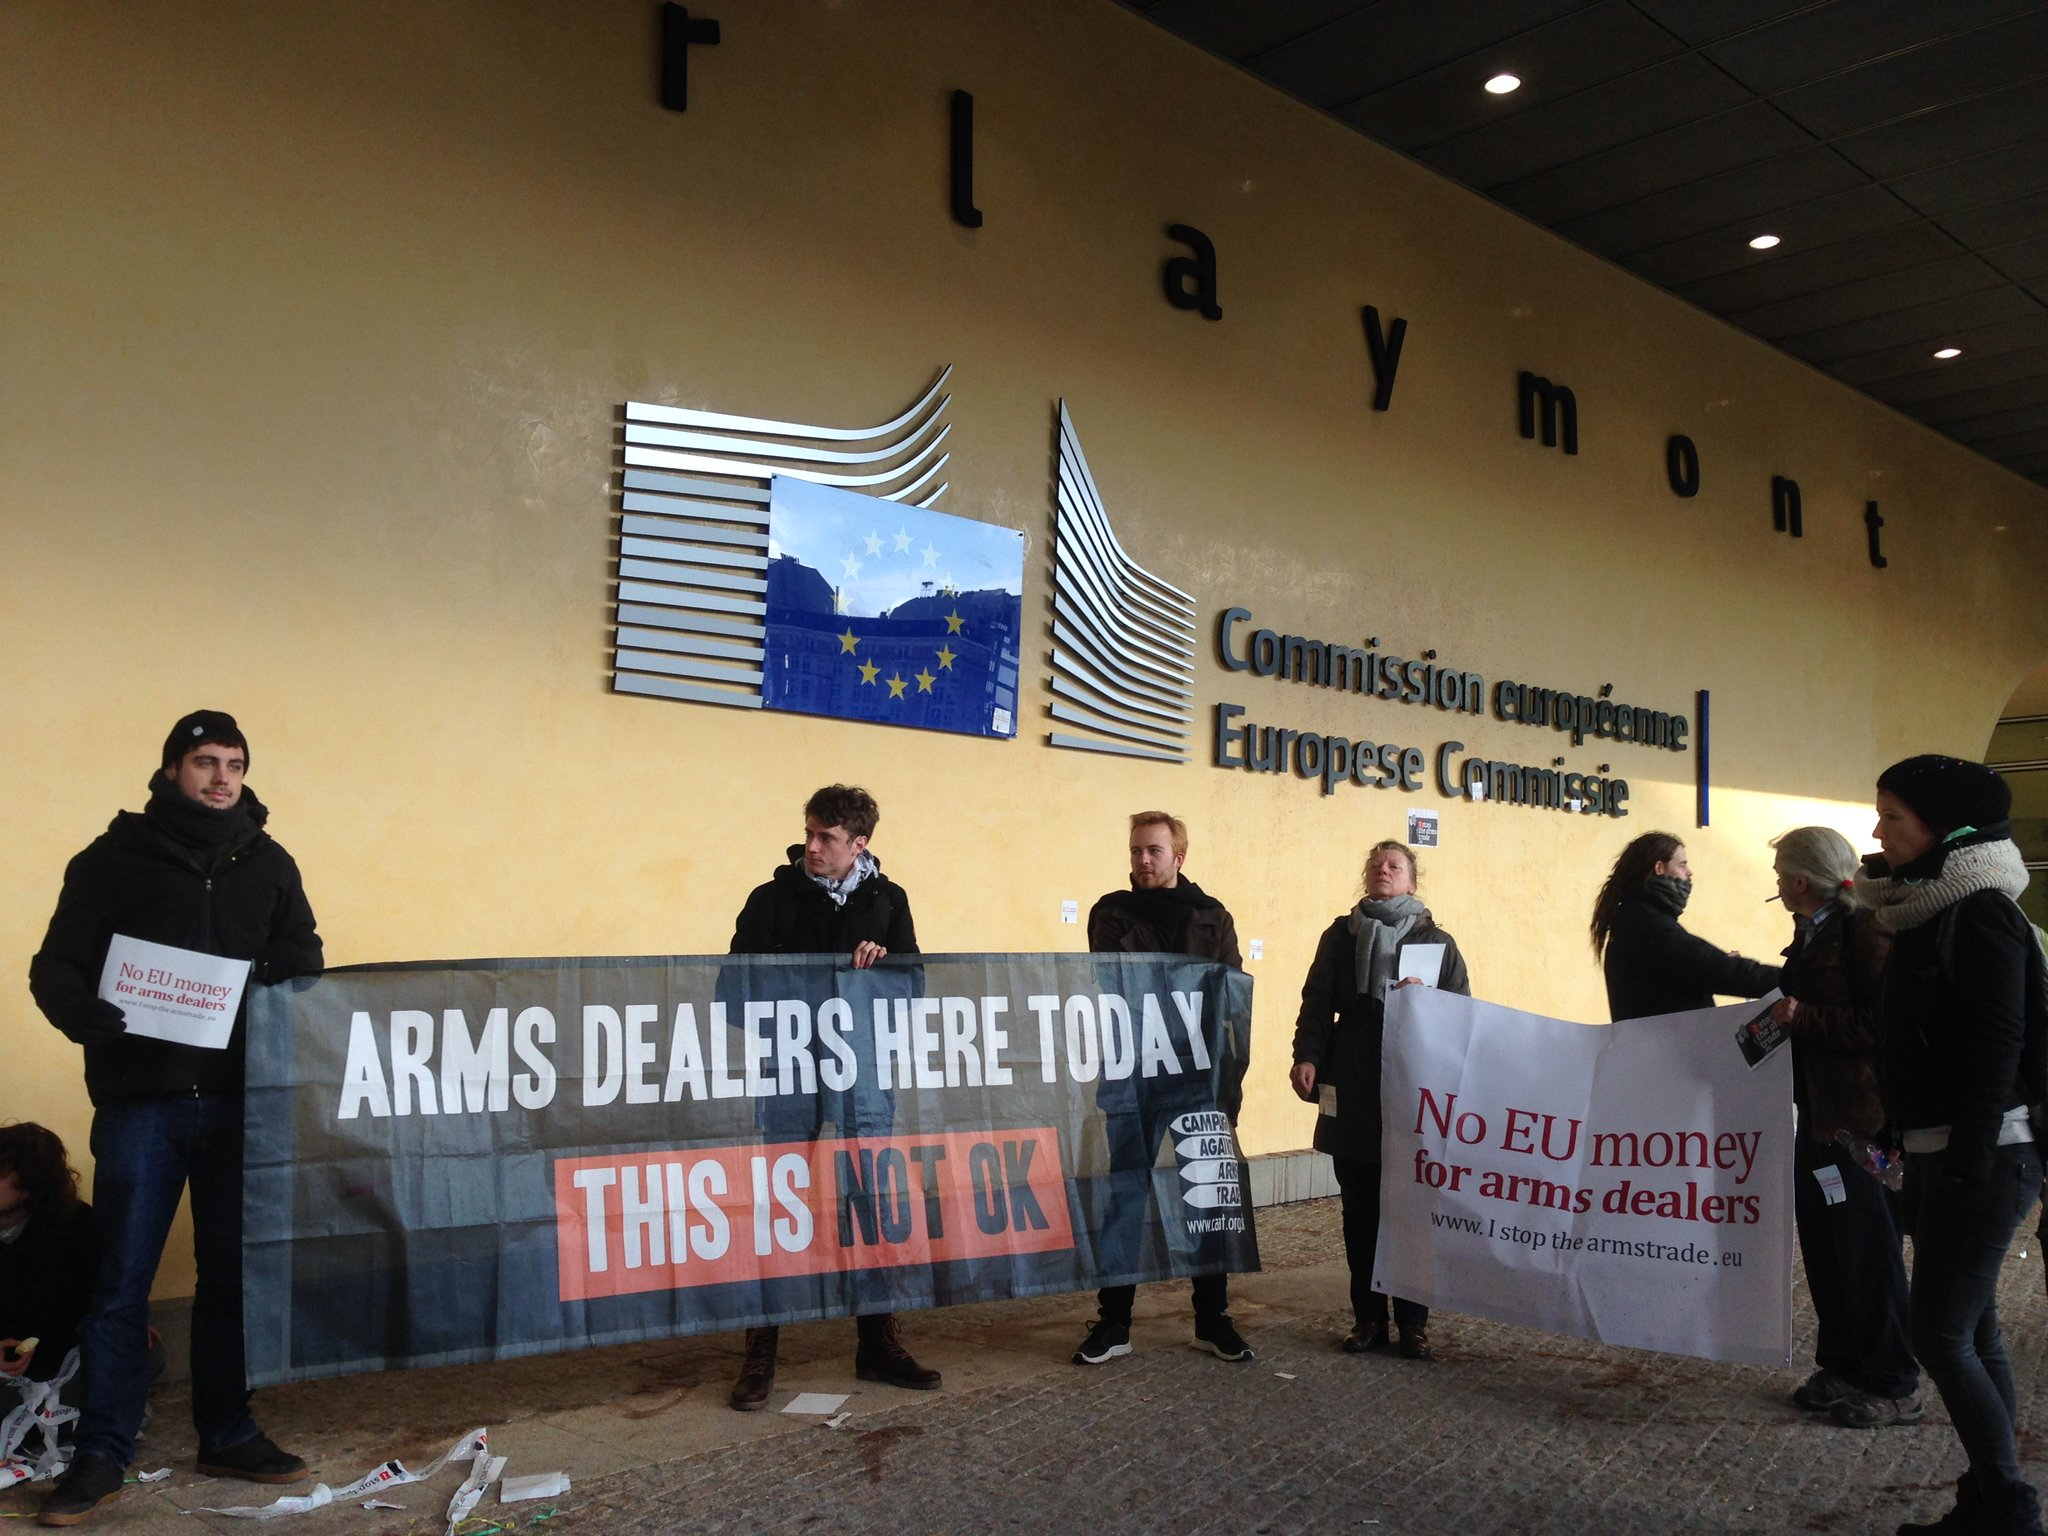 Arms dealers lobbying EU policymakers here today in Brussels https://t.co/U9FD26IPmG